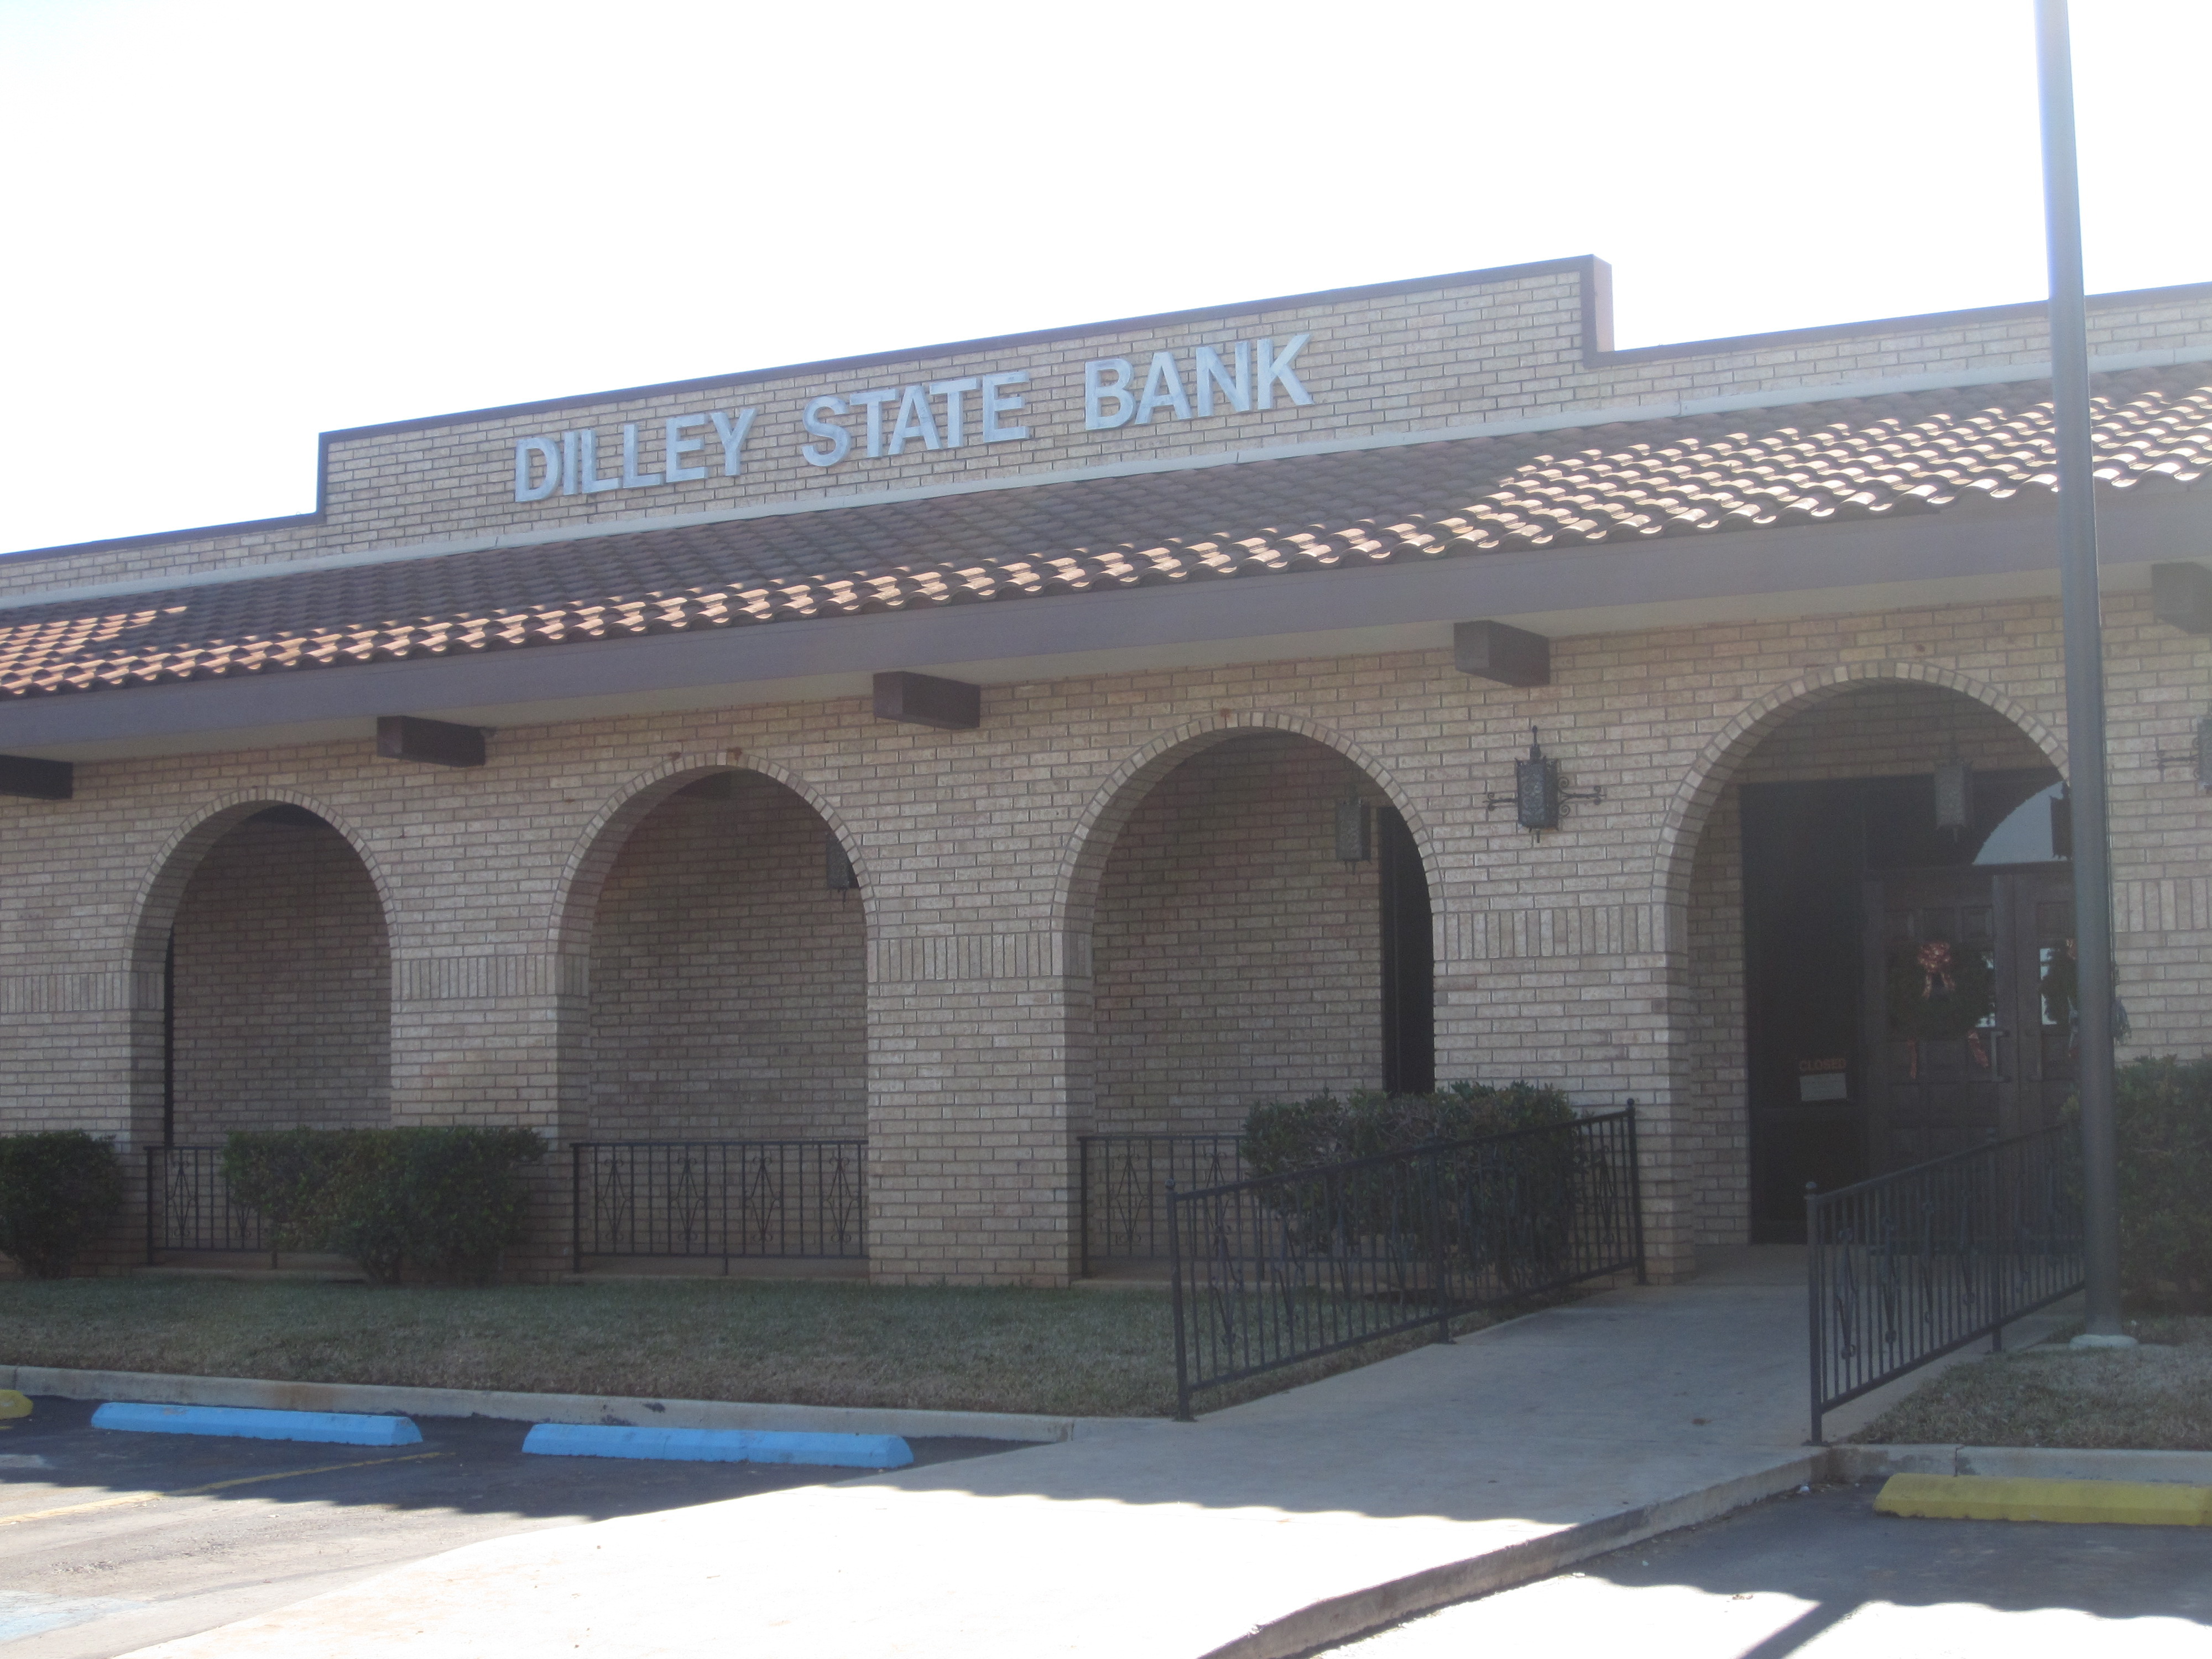 Dilley State Bank